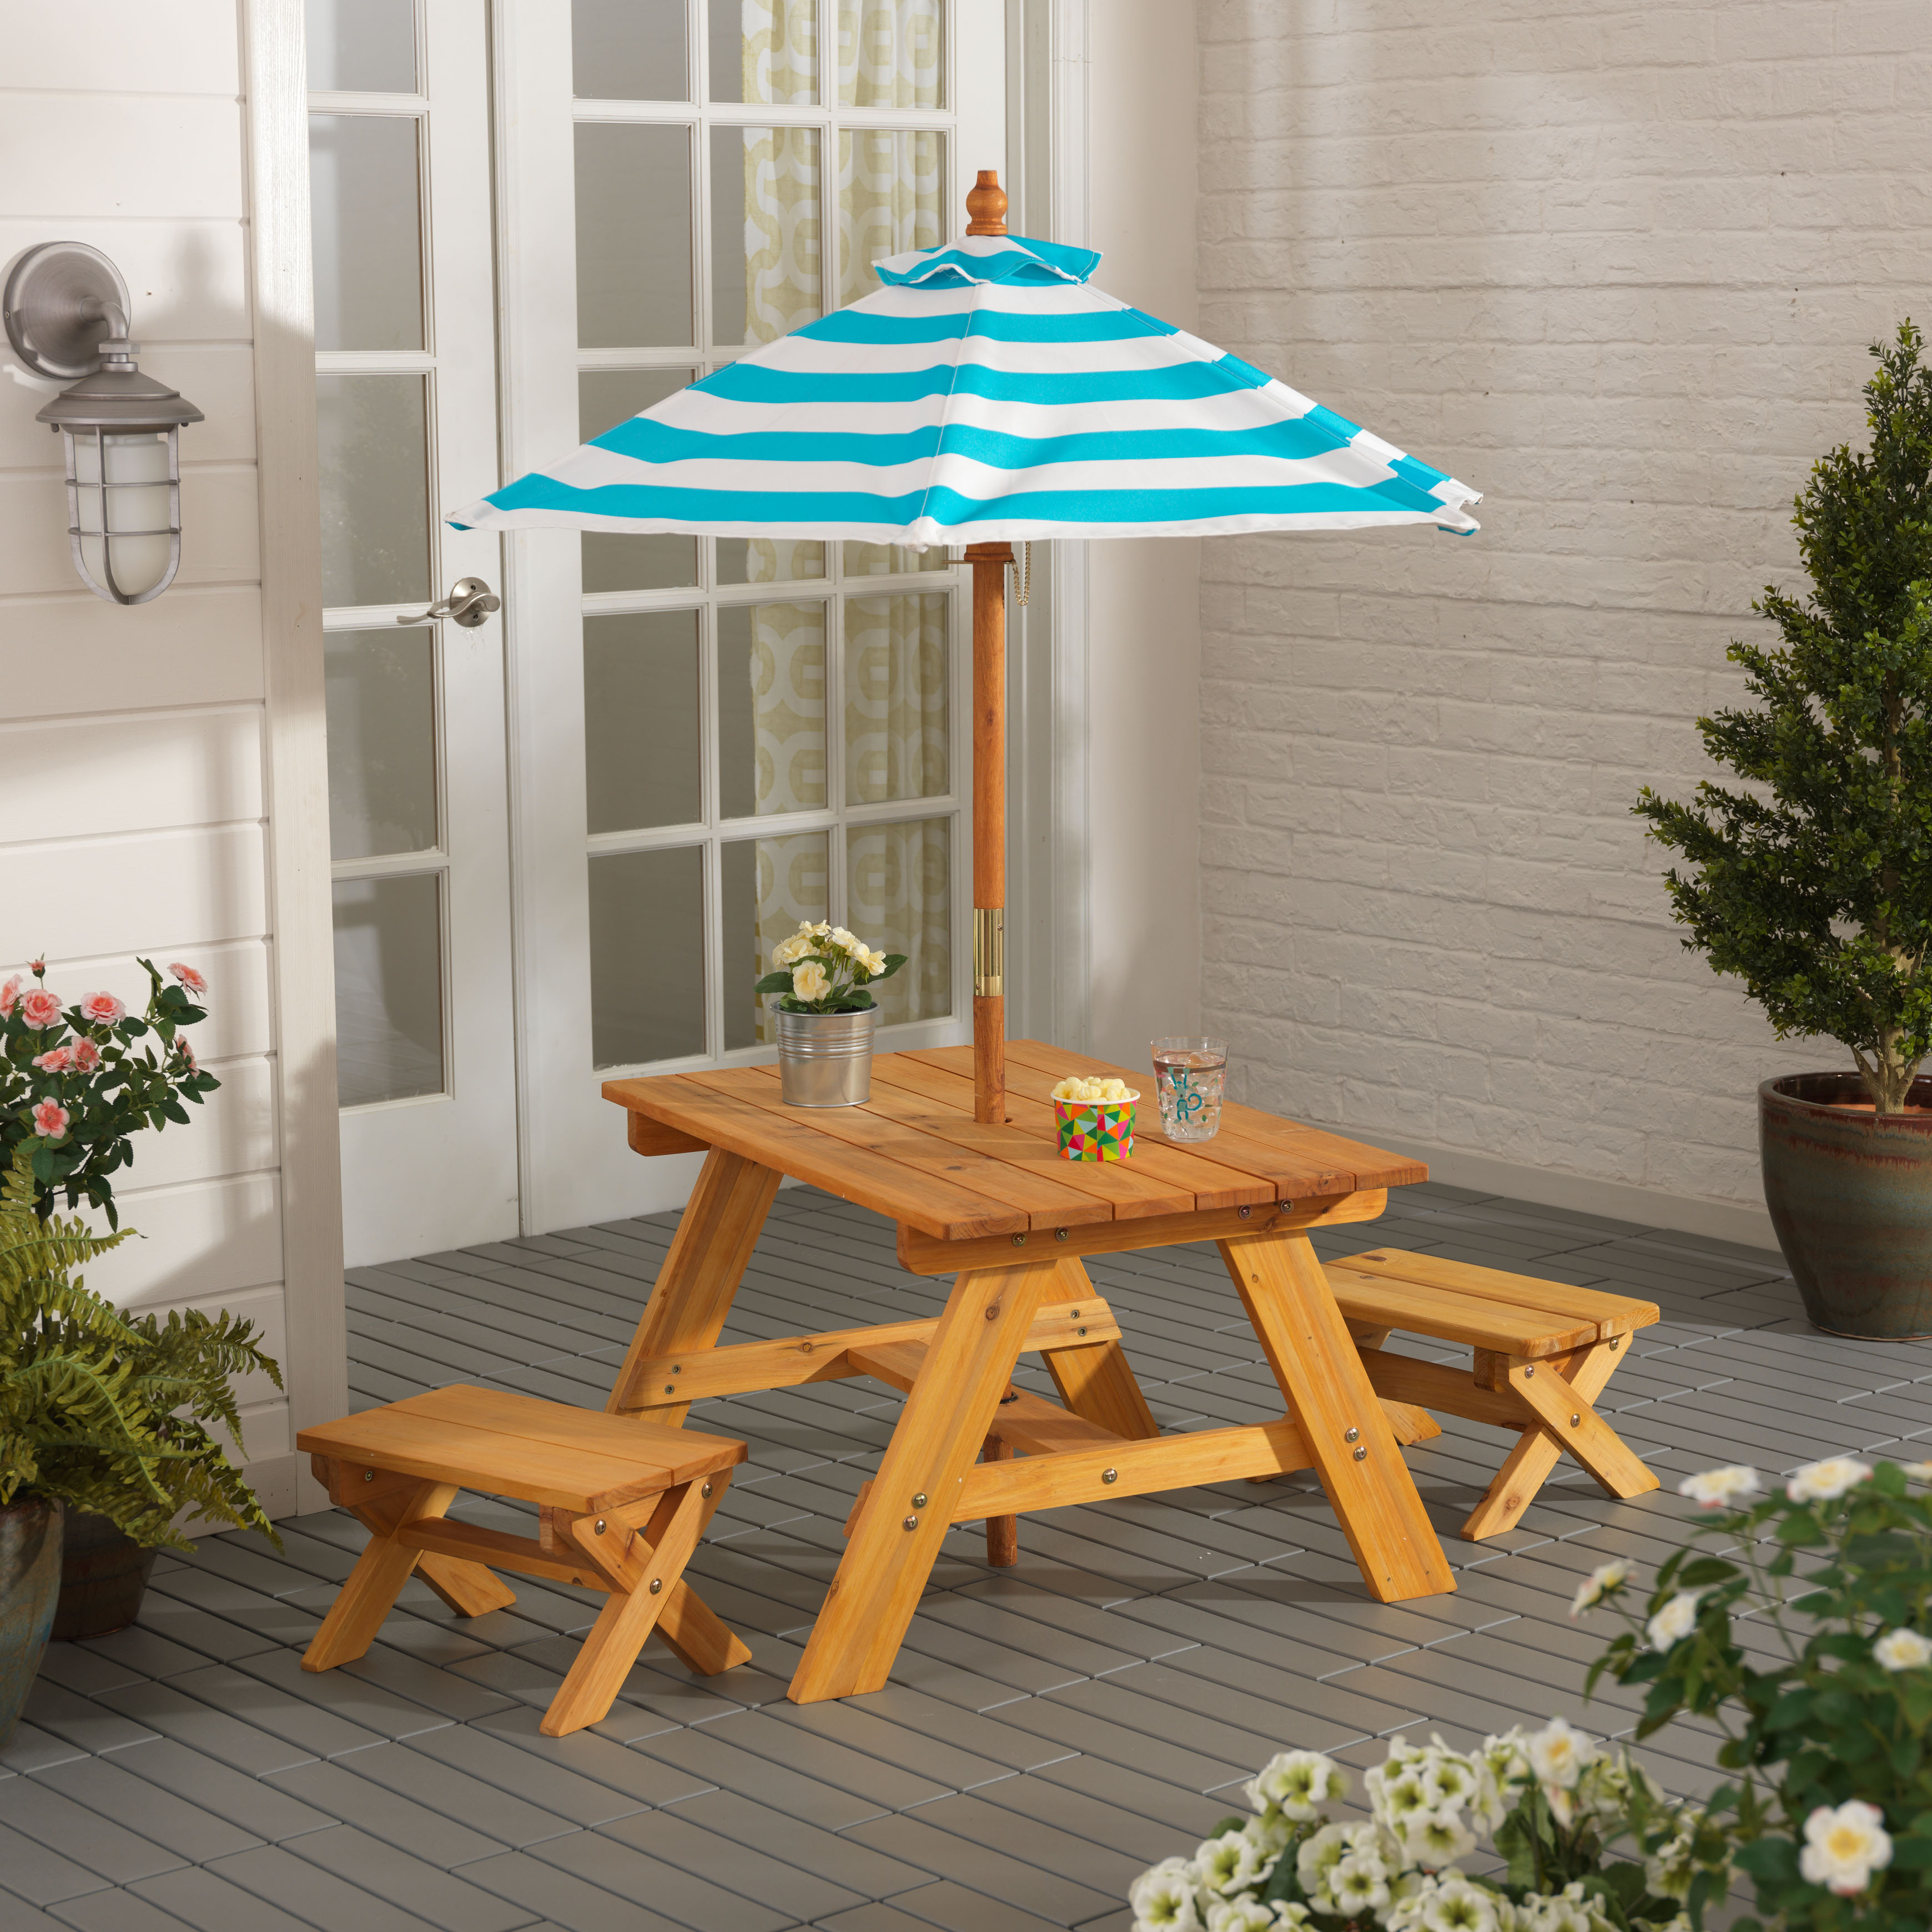 KidKraft Outdoor Table & Bench Set with Umbrella Turquoise & White by KidKraft